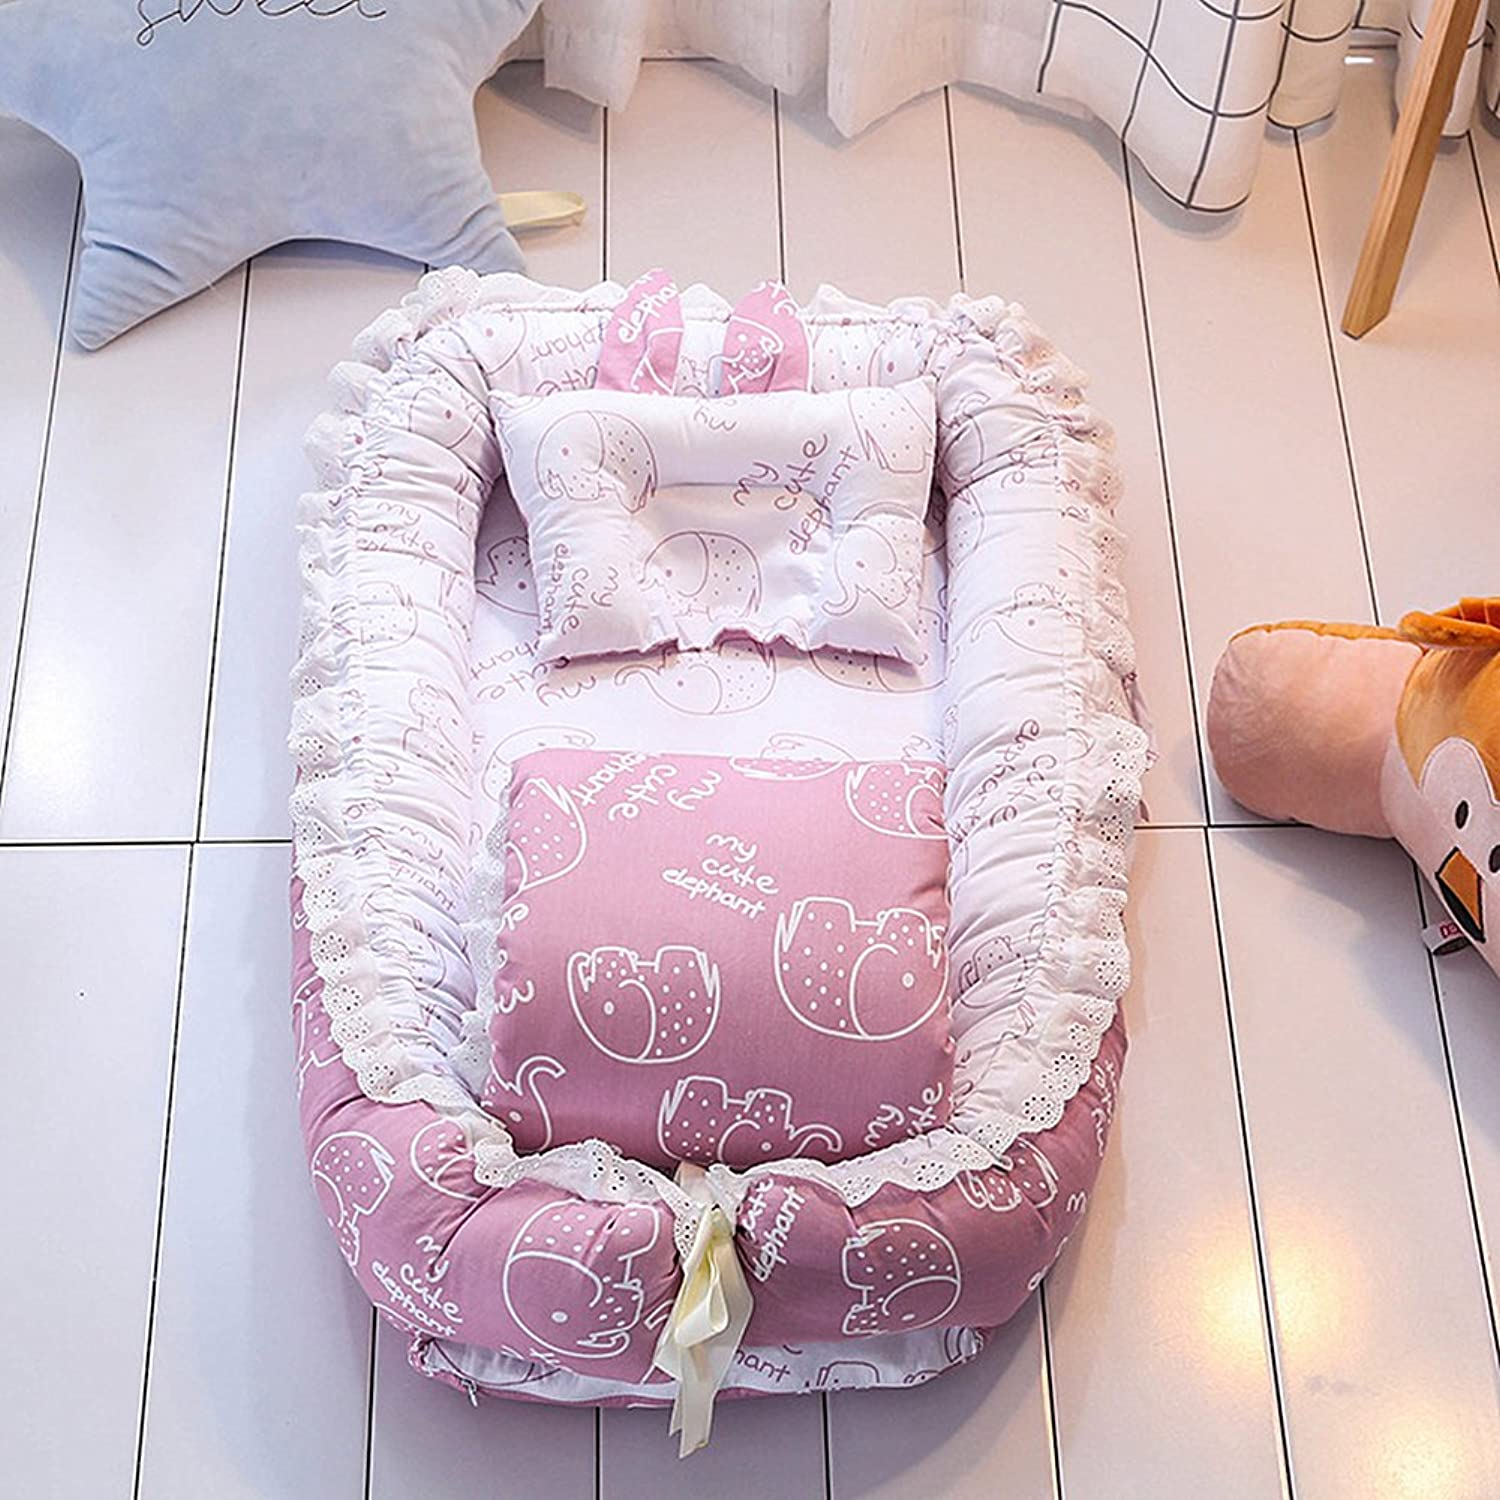 Ukeler Reversible Baby Nest Bassinet Lounger for Bed- 100% Cotton Portable Crib for Bedroom Travel - Breathable & Hypoallergenic Co-Sleeping Baby Bed, Suitable for 0-24 Month